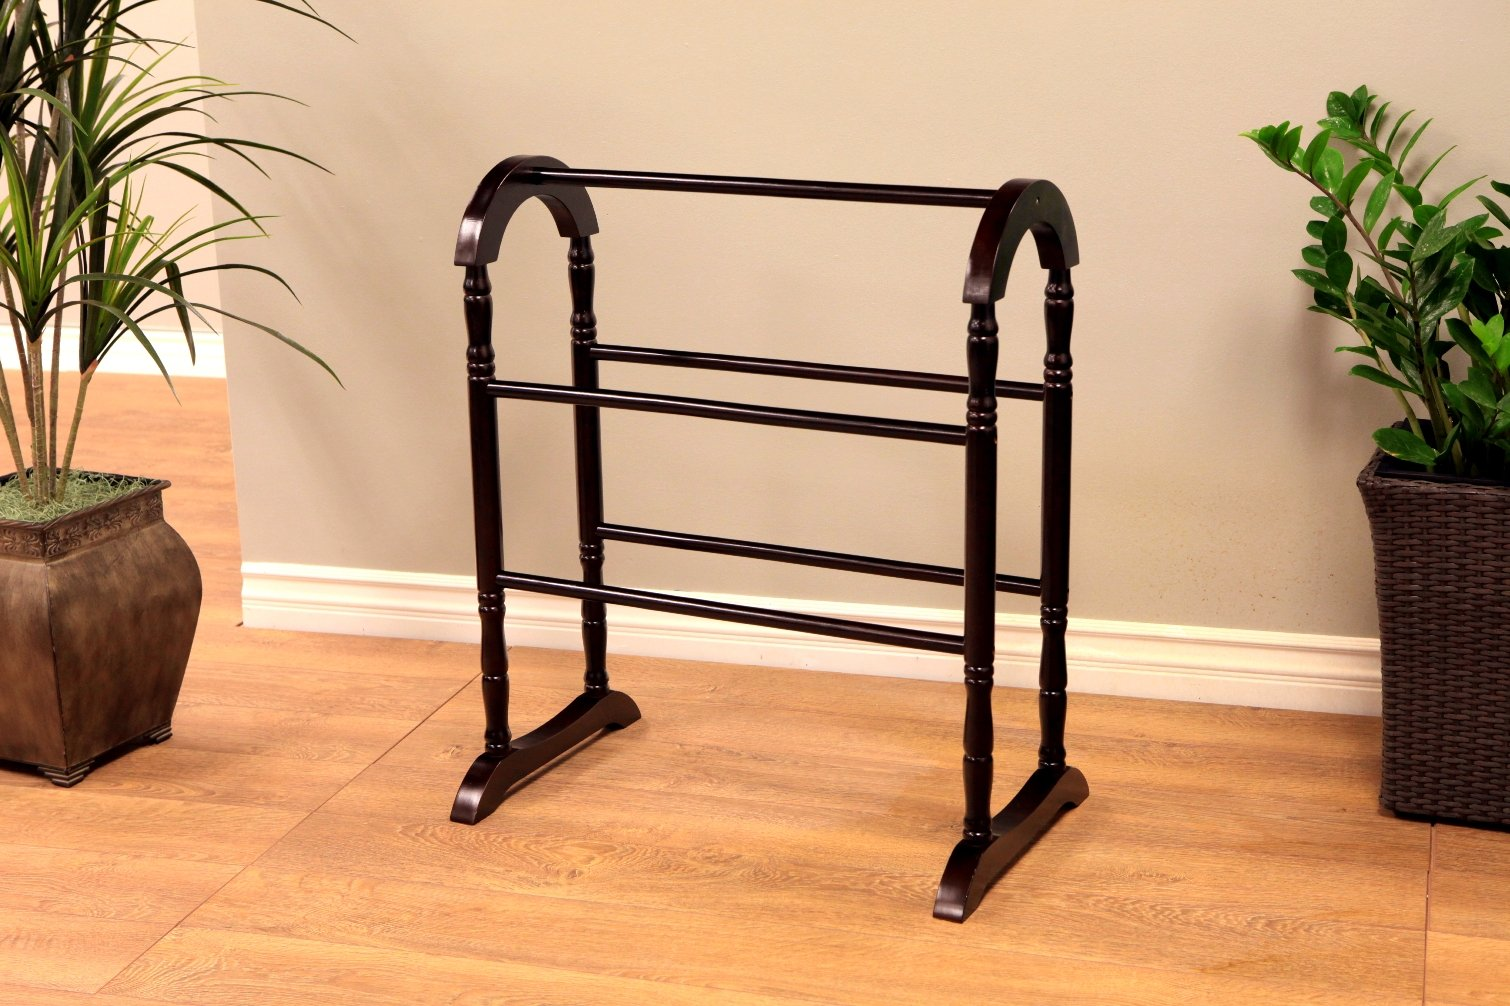 Frenchi Home Furnishing Quilt Rack, Espresso by Frenchi Home Furnishing (Image #3)